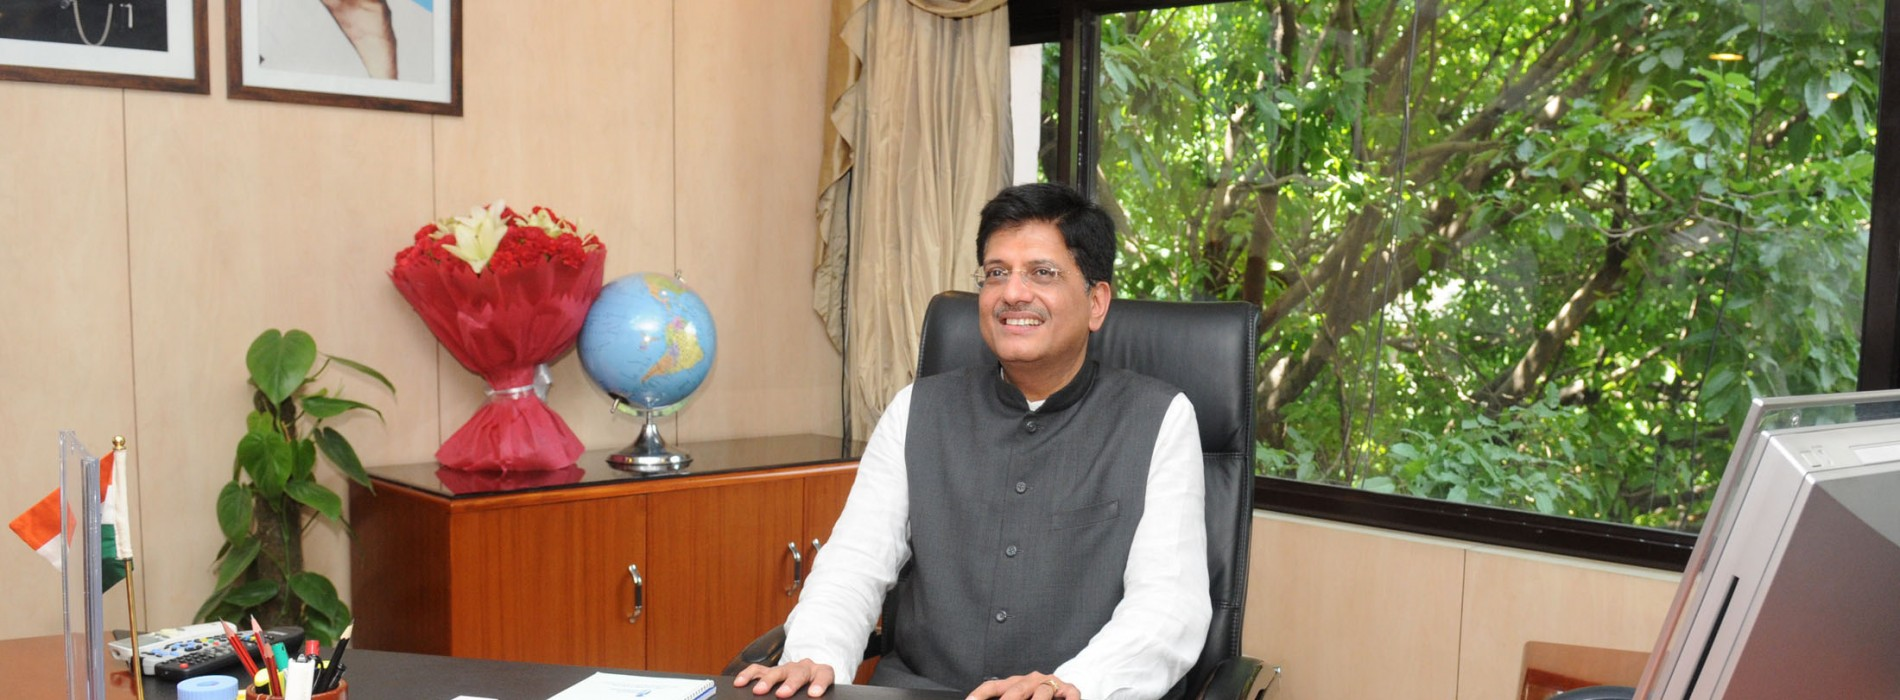 Govt facing no stress in acquiring land for bullet train project: Piyush Goyal